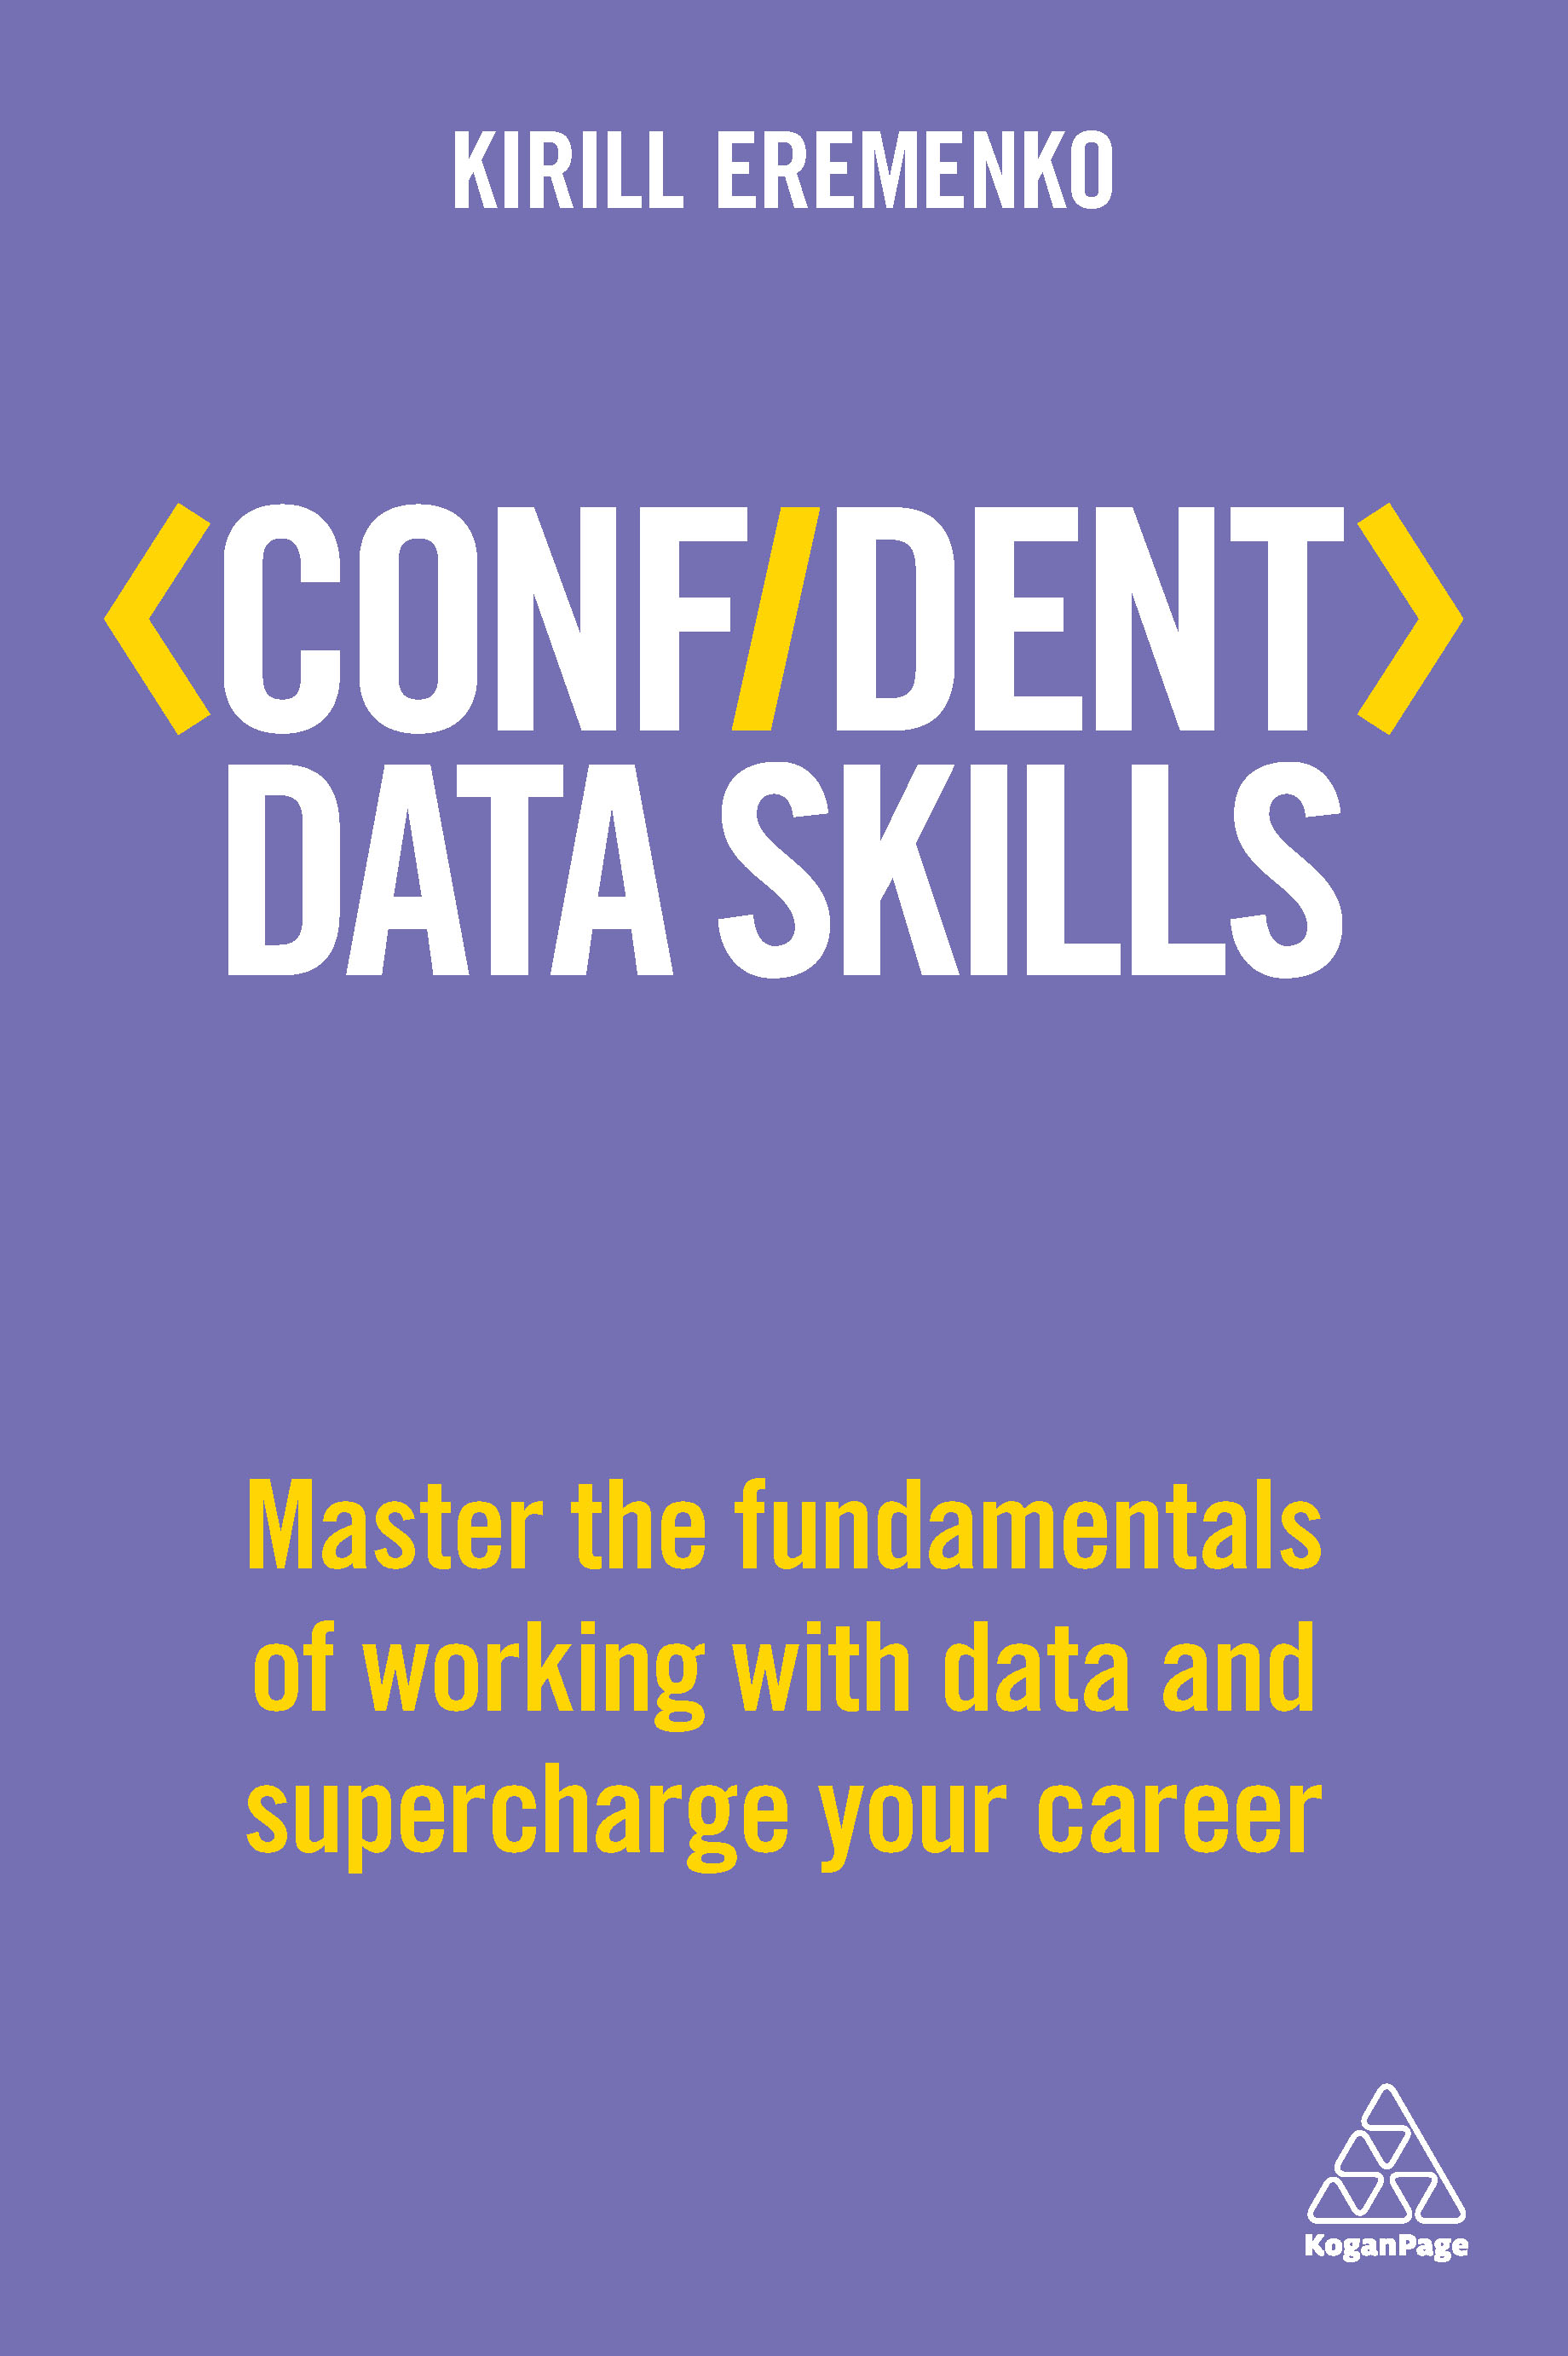 Download Ebook Confident Data Skills by Kirill Eremenko Pdf